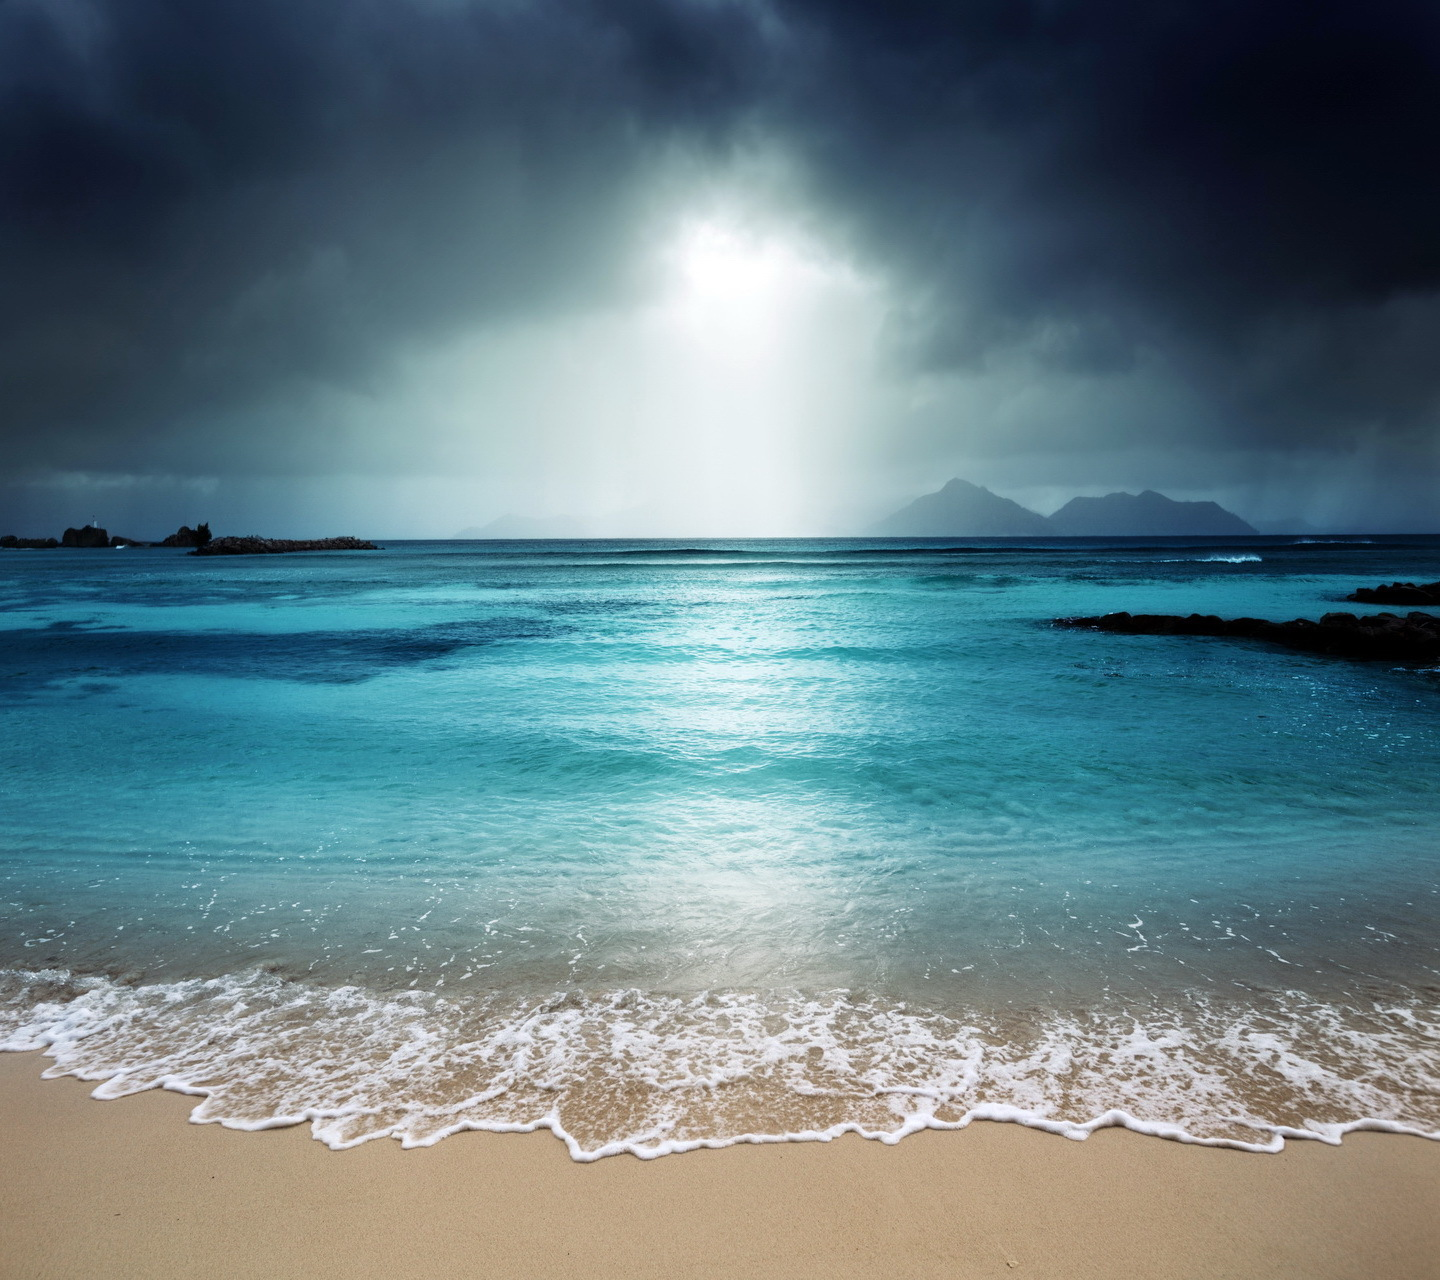 21697 download wallpaper Landscape, Sea, Clouds, Beach screensavers and pictures for free